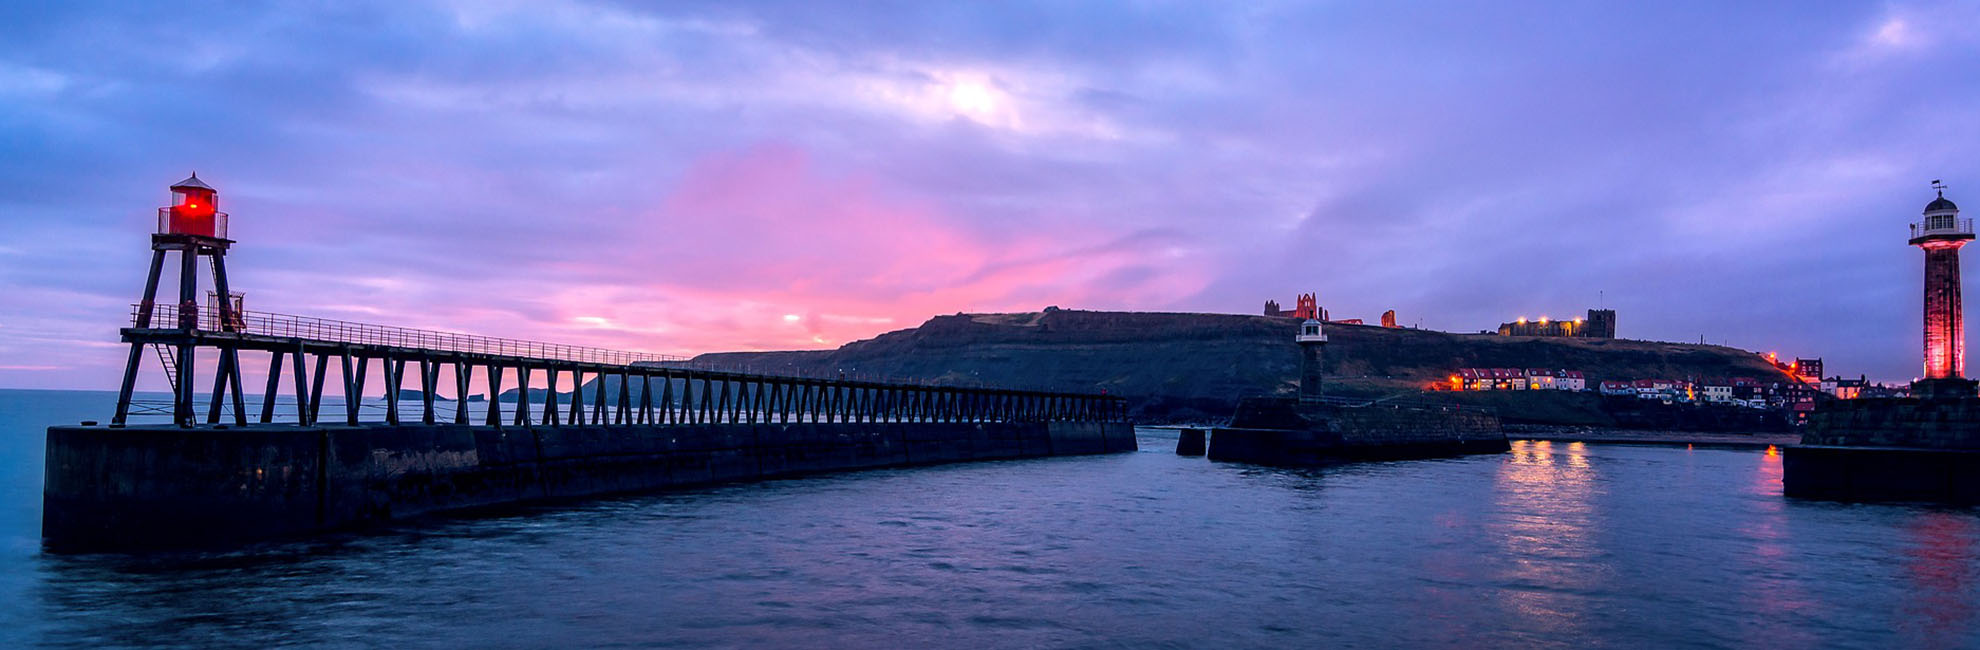 Piers across the sea at dusk in Yorkshire